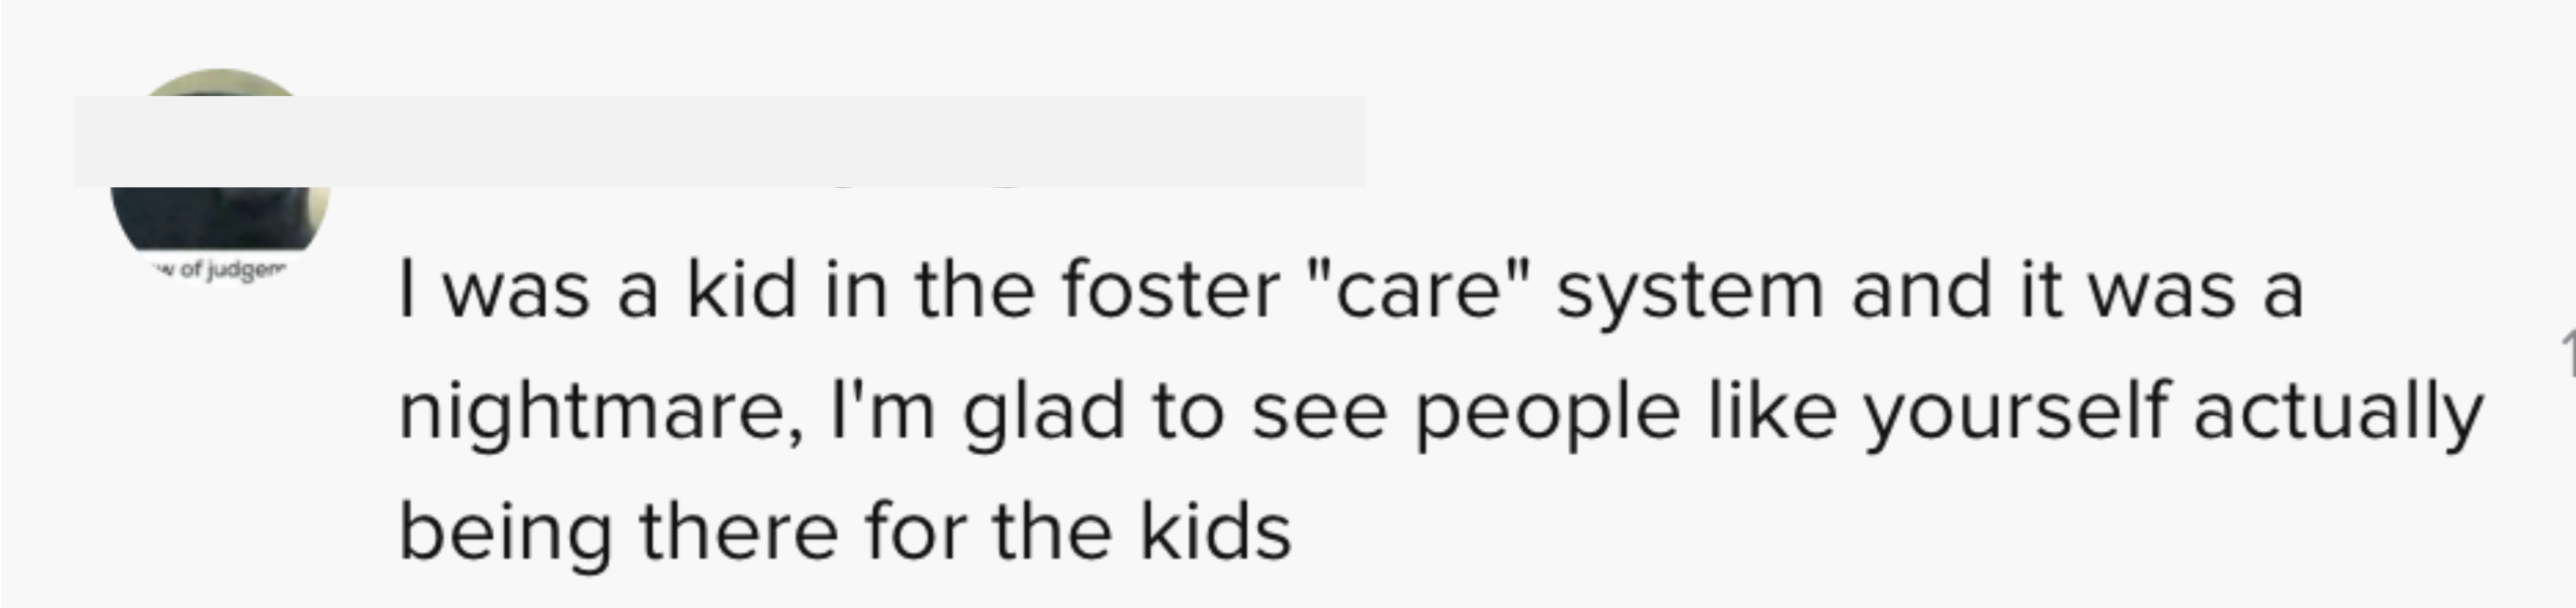 """I was a kid in the foster """"care system"""" and it was a nightmare, I'm glad to see people like yourself actually being there for the kids"""